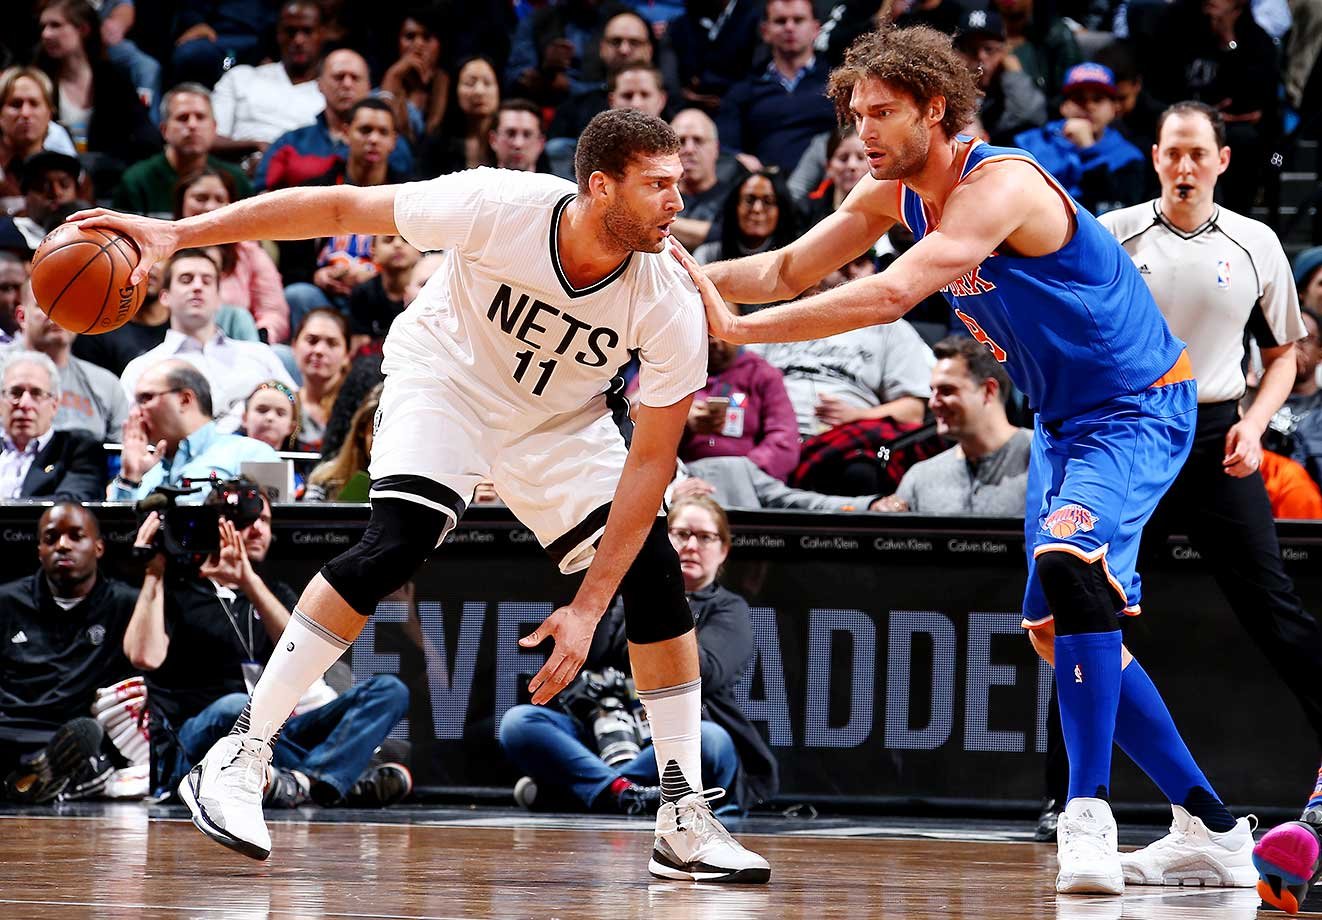 Brook Lopez of the Brooklyn Nets handles the ball against his twin brother, Robin, of the New York Knicks.